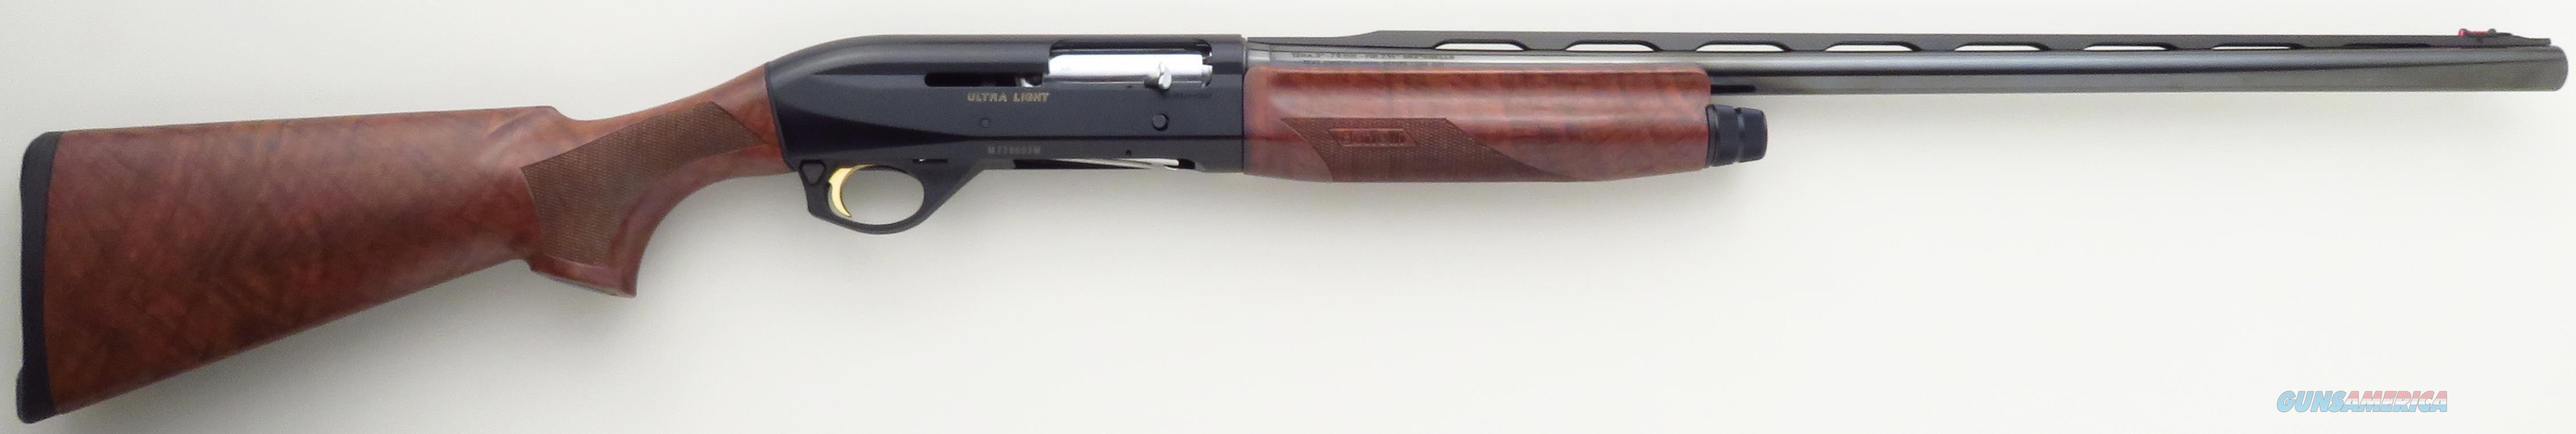 Benelli Ultra Light 12, 3-inch, 26-inch M, rib, 6.2 pounds, new condition  Guns > Shotguns > Benelli Shotguns > Sporting